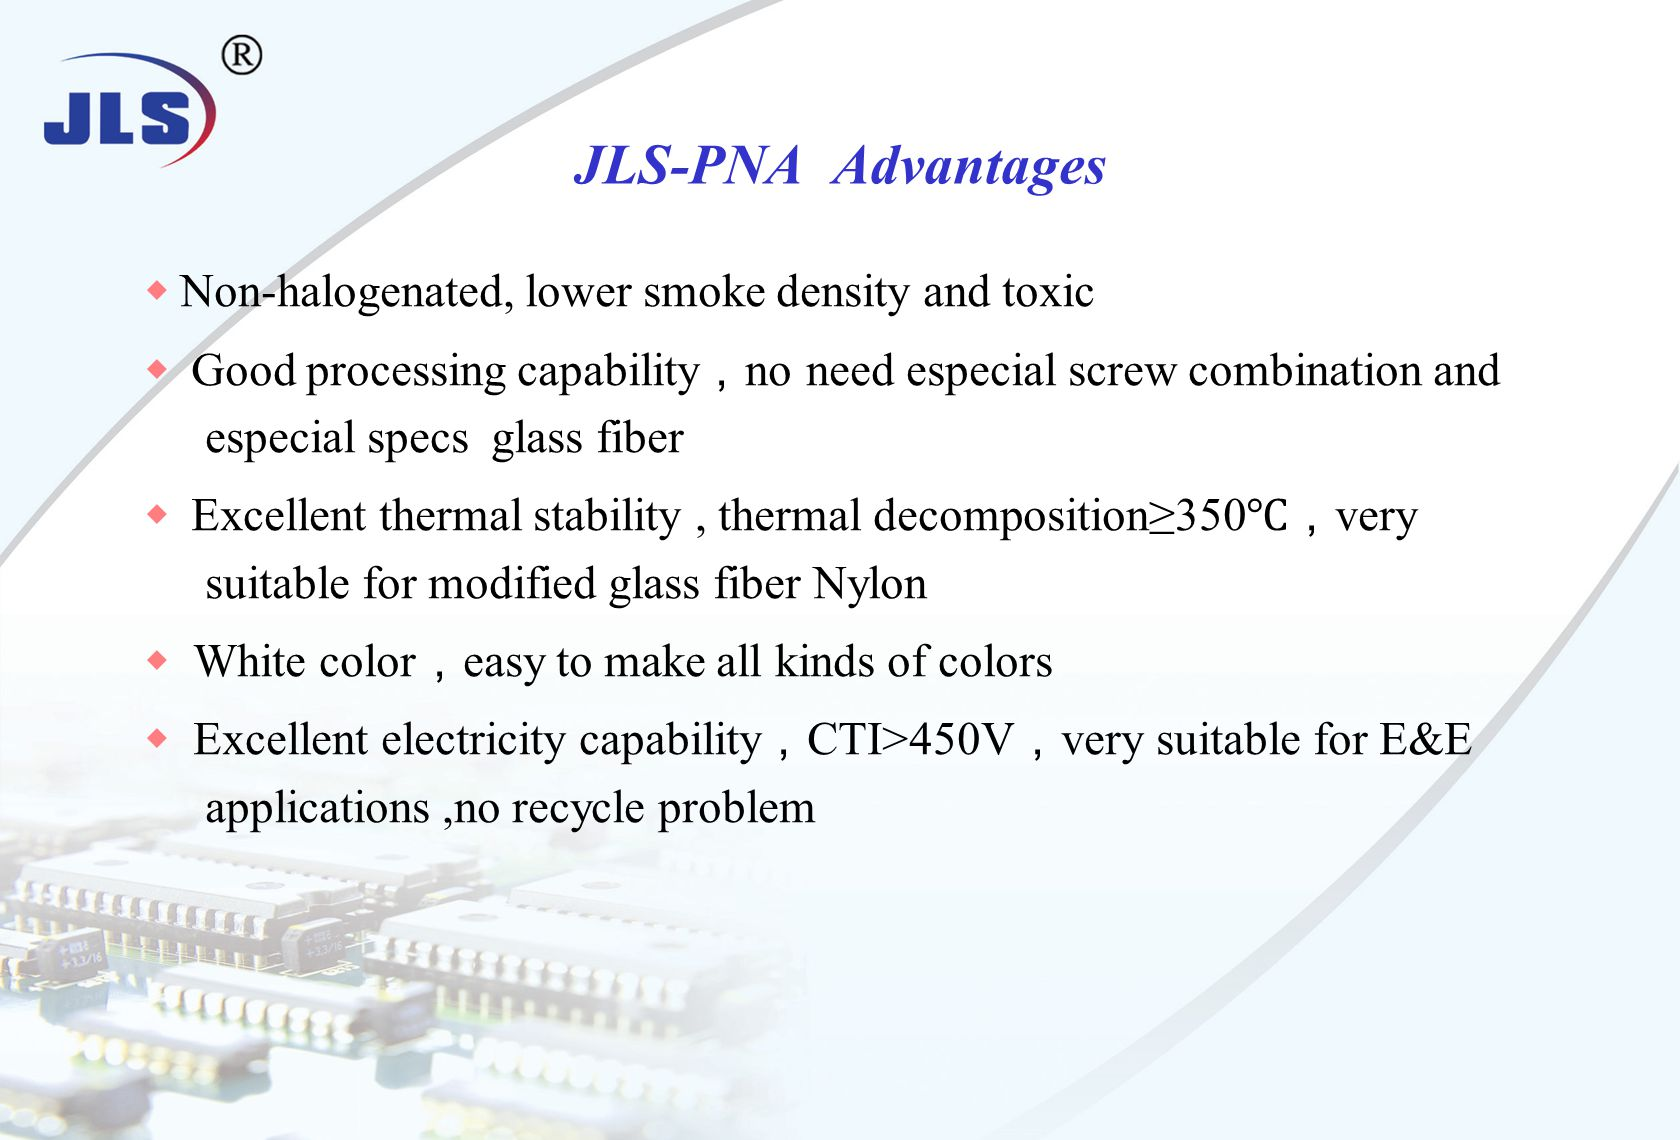 ◆ Non-halogenated, lower smoke density and toxic ◆ Good processing capability , no need especial screw combination and especial specs glass fiber ◆ Excellent thermal stability, thermal decomposition≥350 ℃, very suitable for modified glass fiber Nylon ◆ White color , easy to make all kinds of colors ◆ Excellent electricity capability , CTI>450V , very suitable for E&E applications,no recycle problem JLS-PNA Advantages